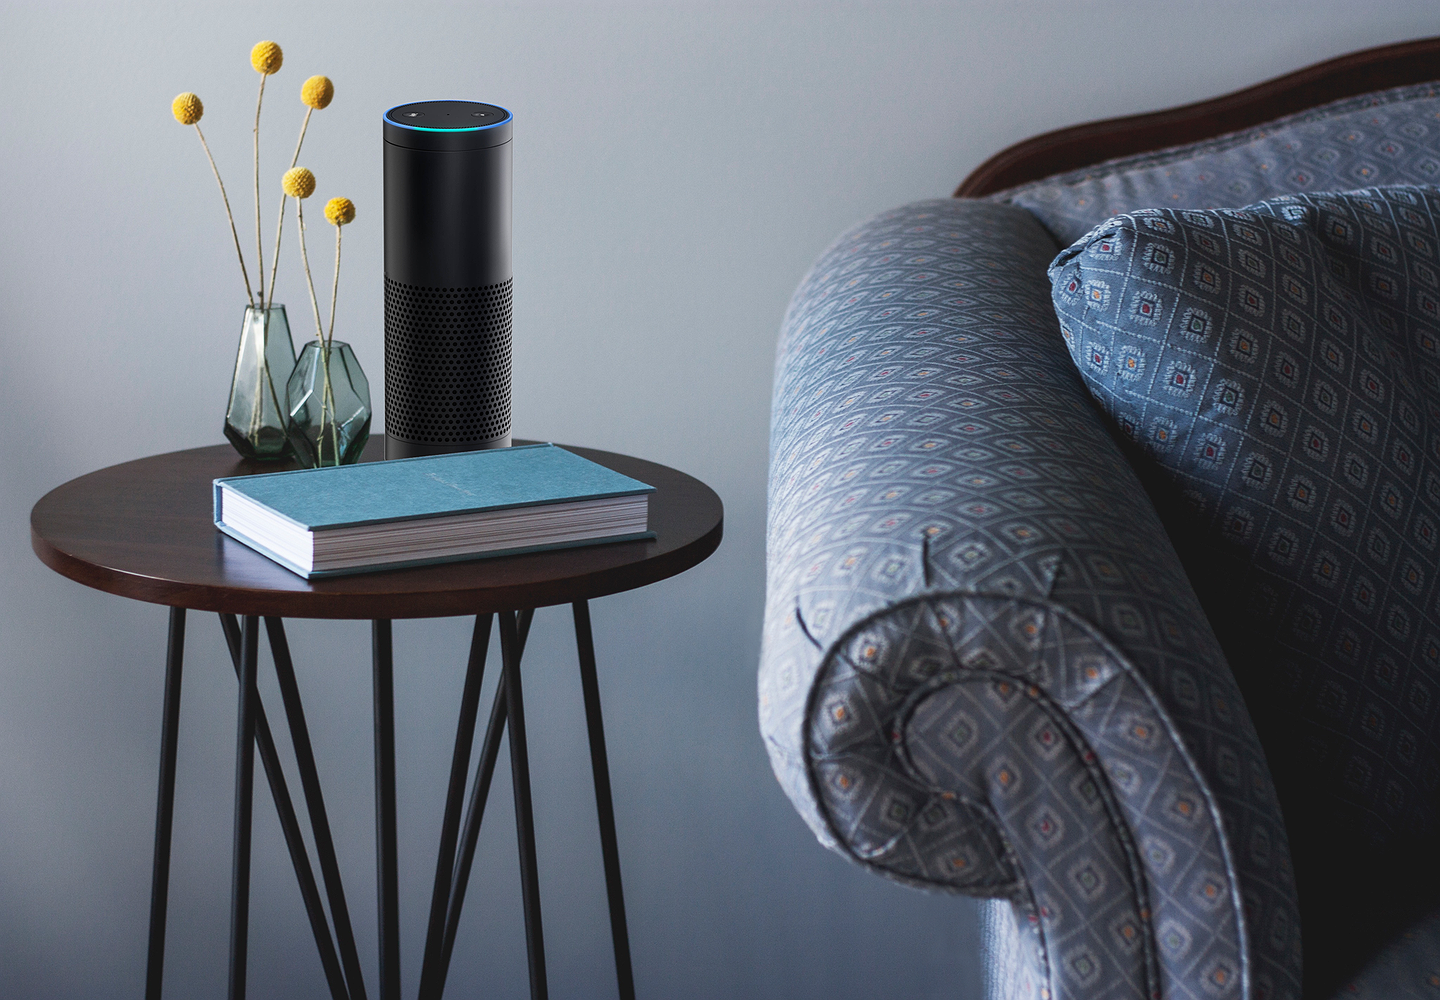 NPR/Edison Research: With Smart Speaker Market Growth, Privacy and Security Concerns Grow Too